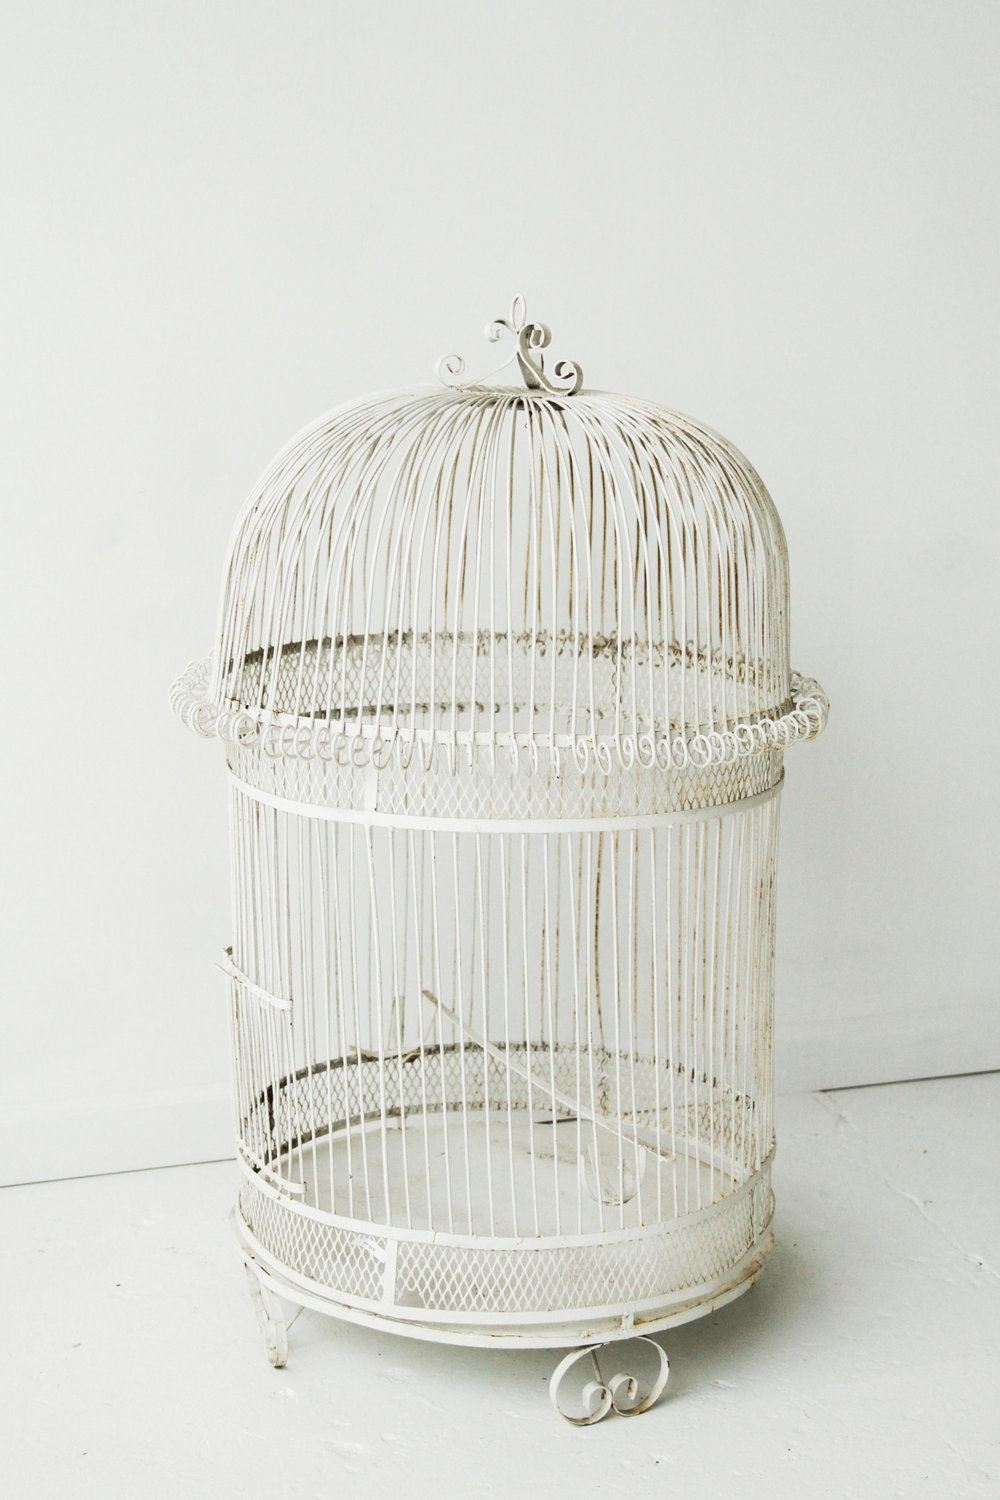 New Inventory - Large White Metal Birdcage